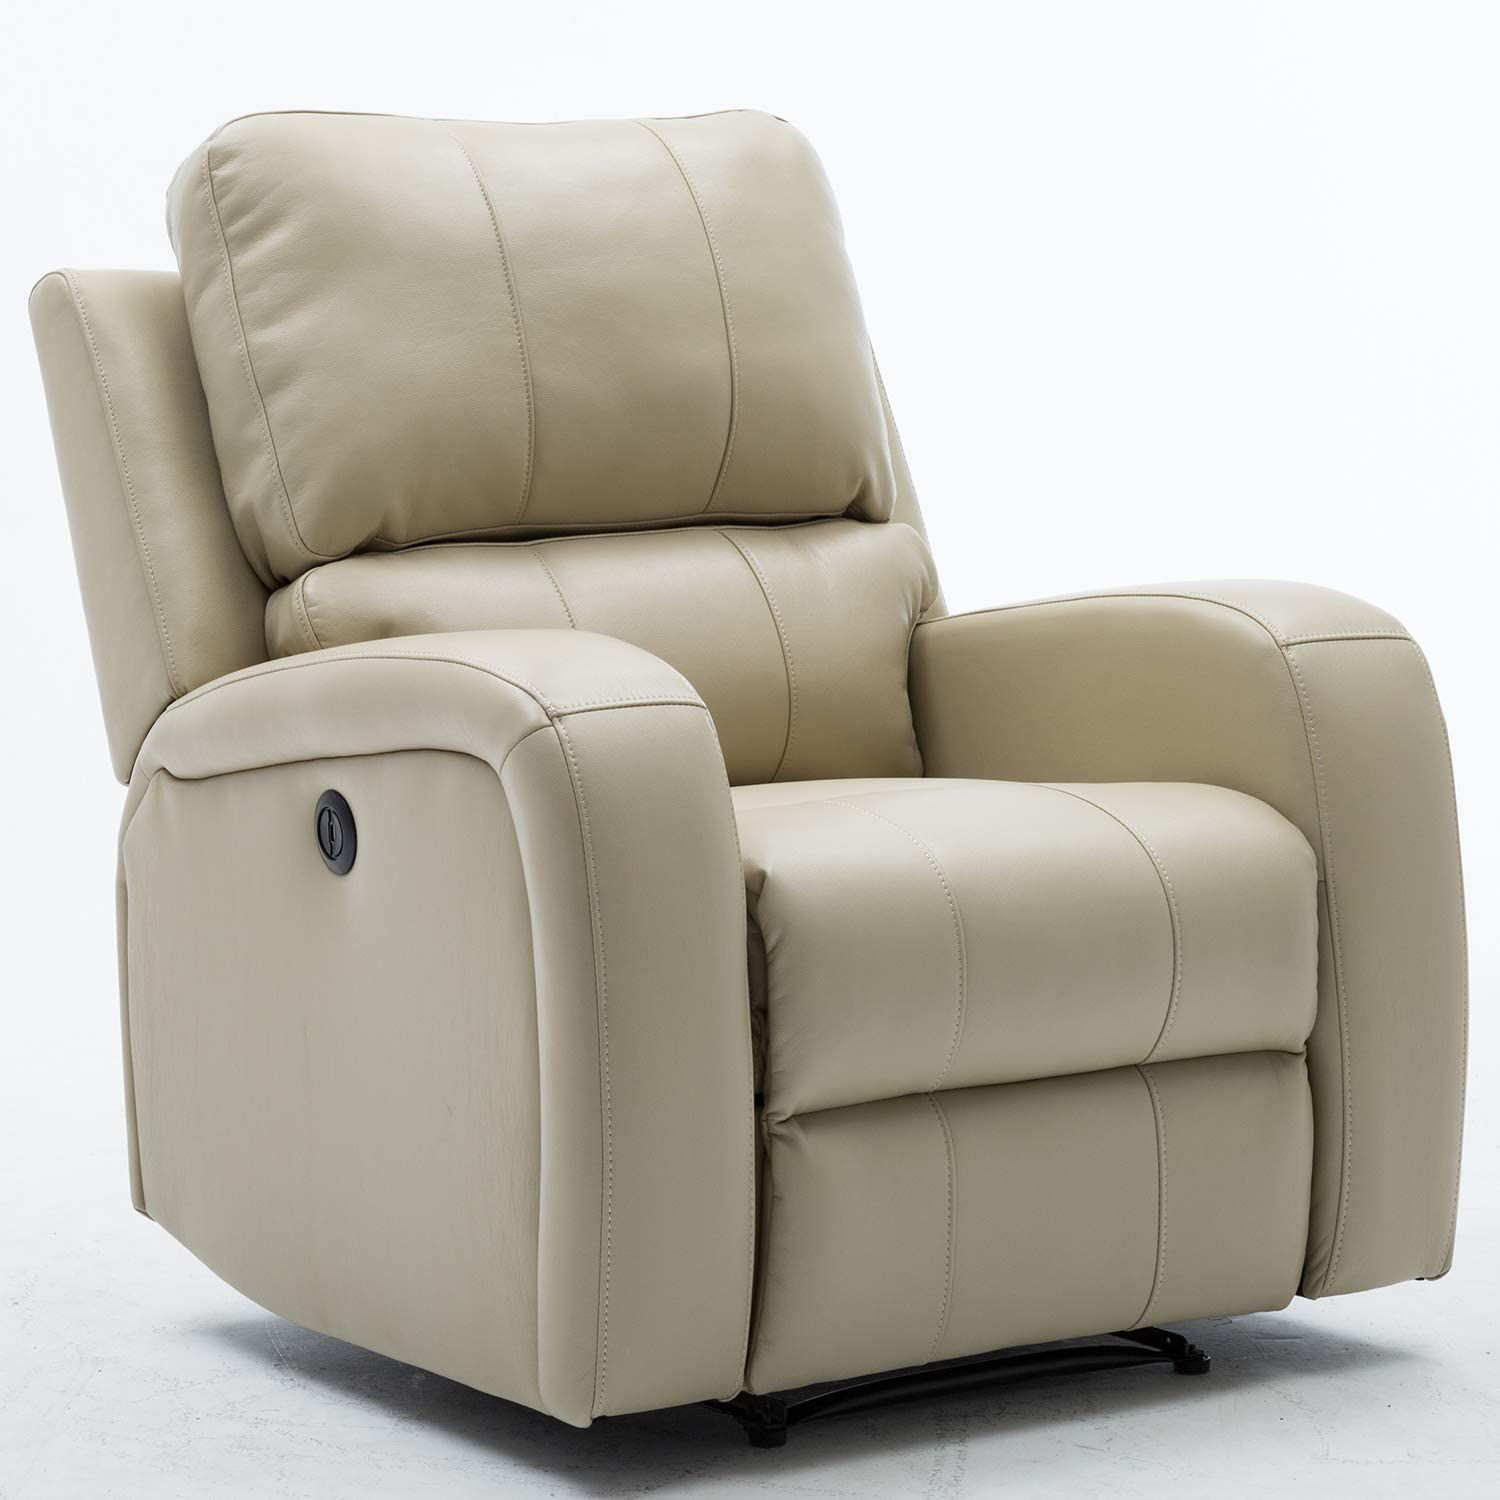 Bonzy Home Power Recliner Chair Air Leather Overstuffed Electric Faux Leather Recliner with USB Charge Port Home Theater Seating Bedroom &